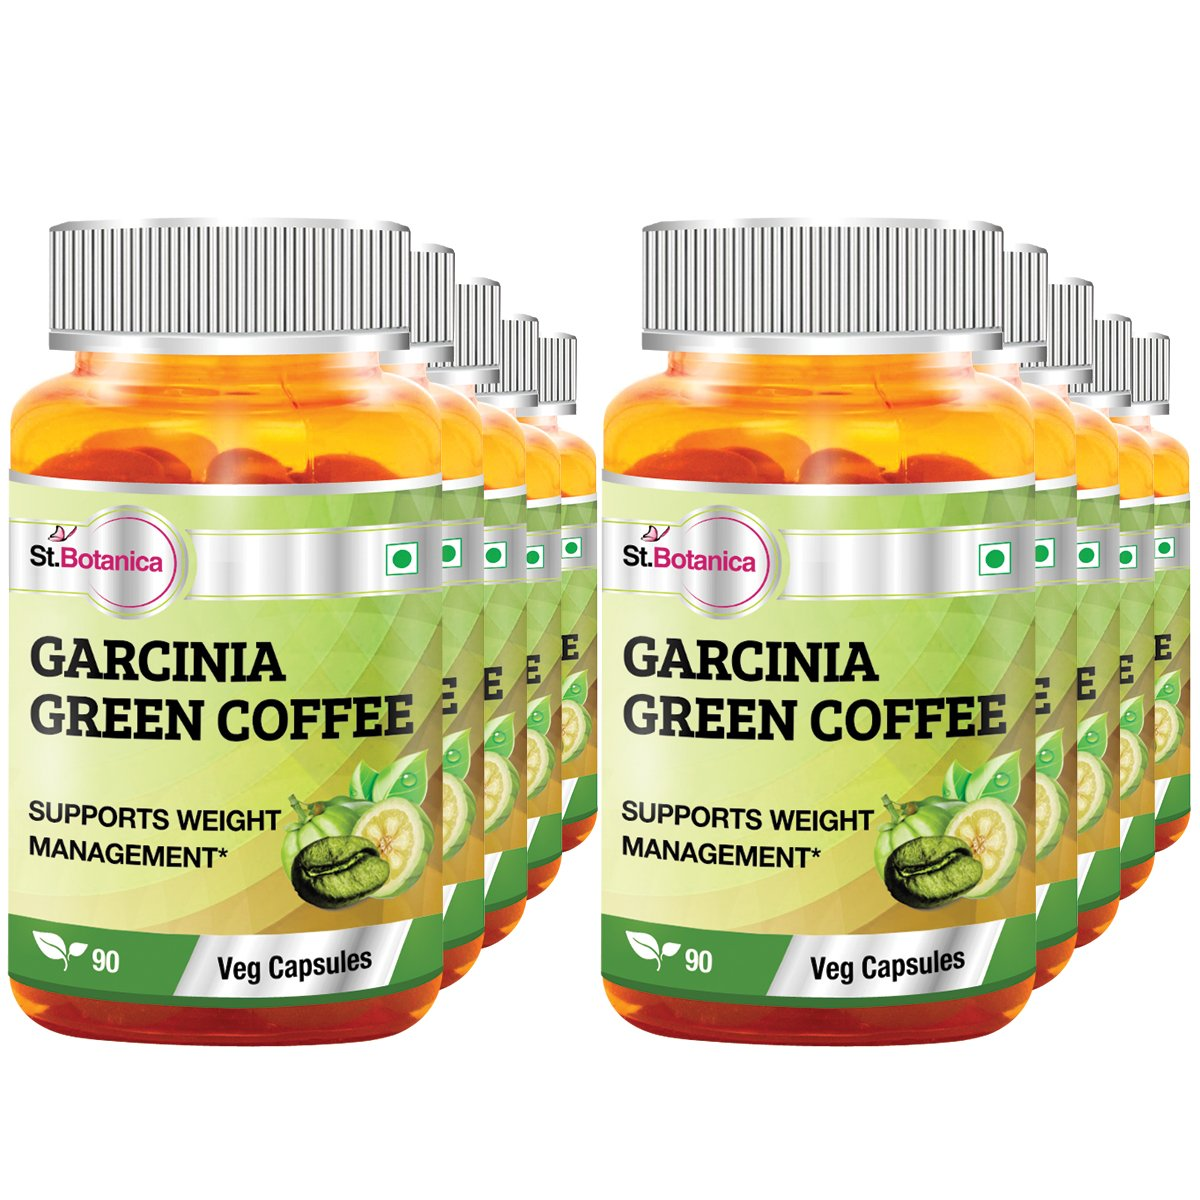 St.Botanica Garcinia Green Coffee Bean Extract - 90 Veg Caps- Pack Of 10 by St. Botanica (Image #1)